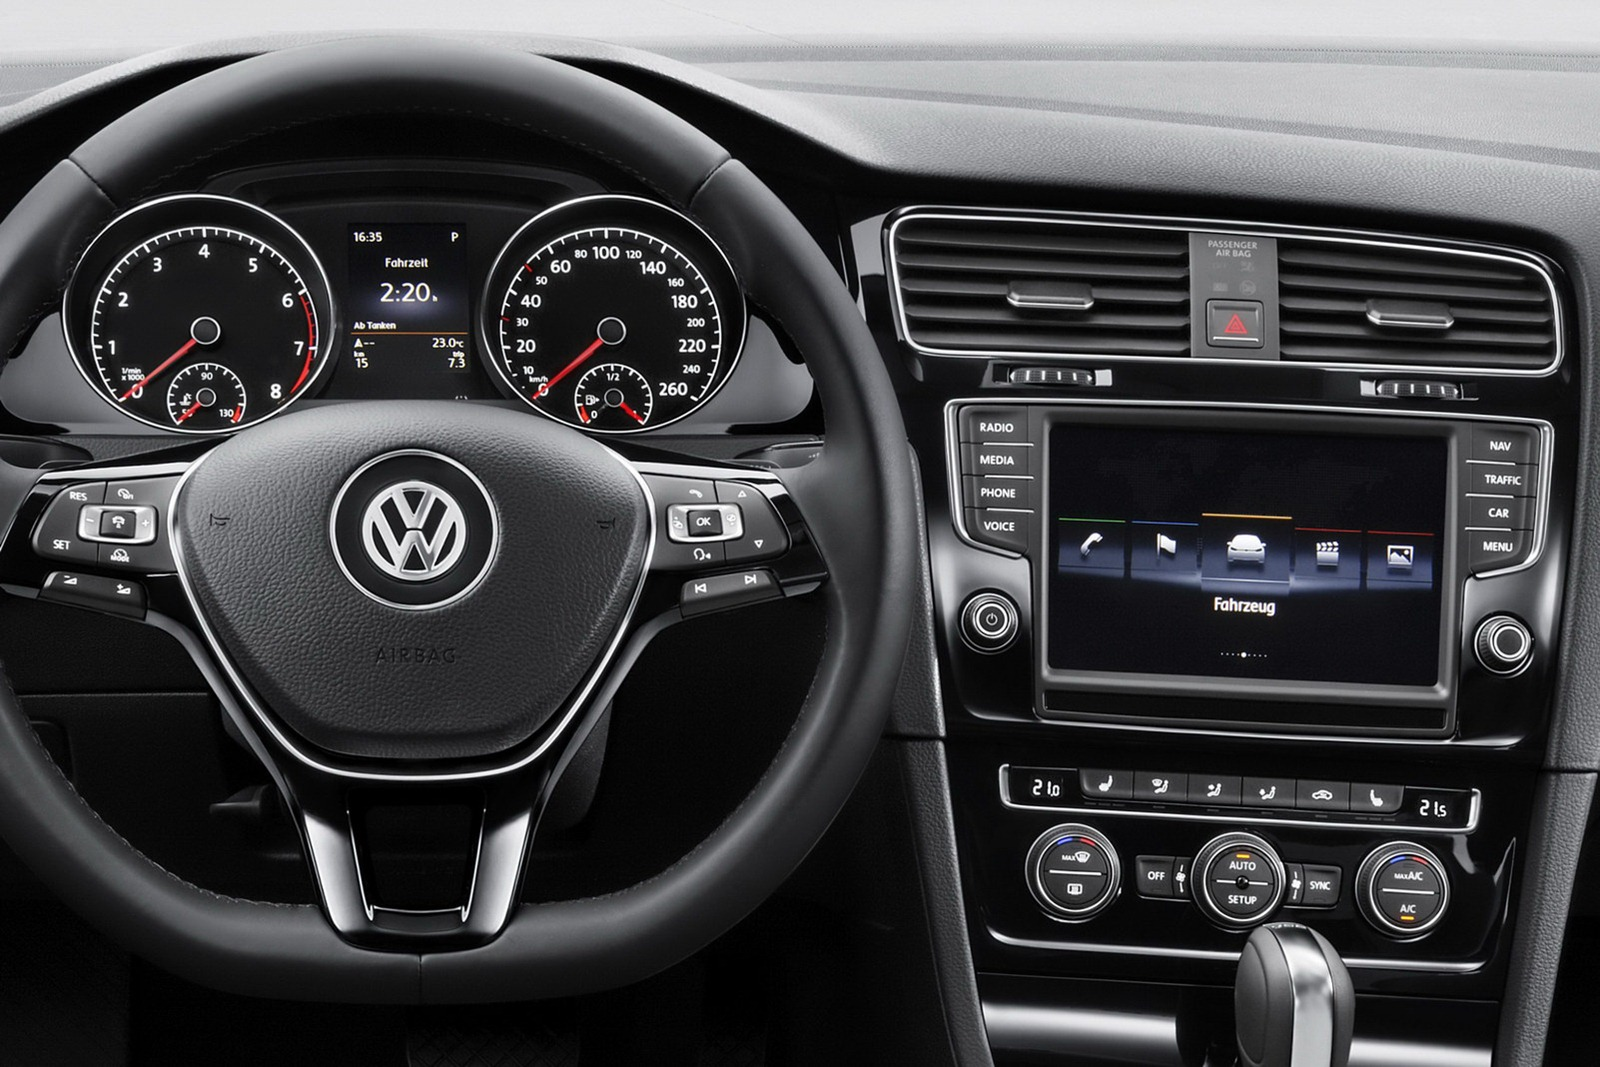 2013 vw mk7 golf interior 10. Black Bedroom Furniture Sets. Home Design Ideas